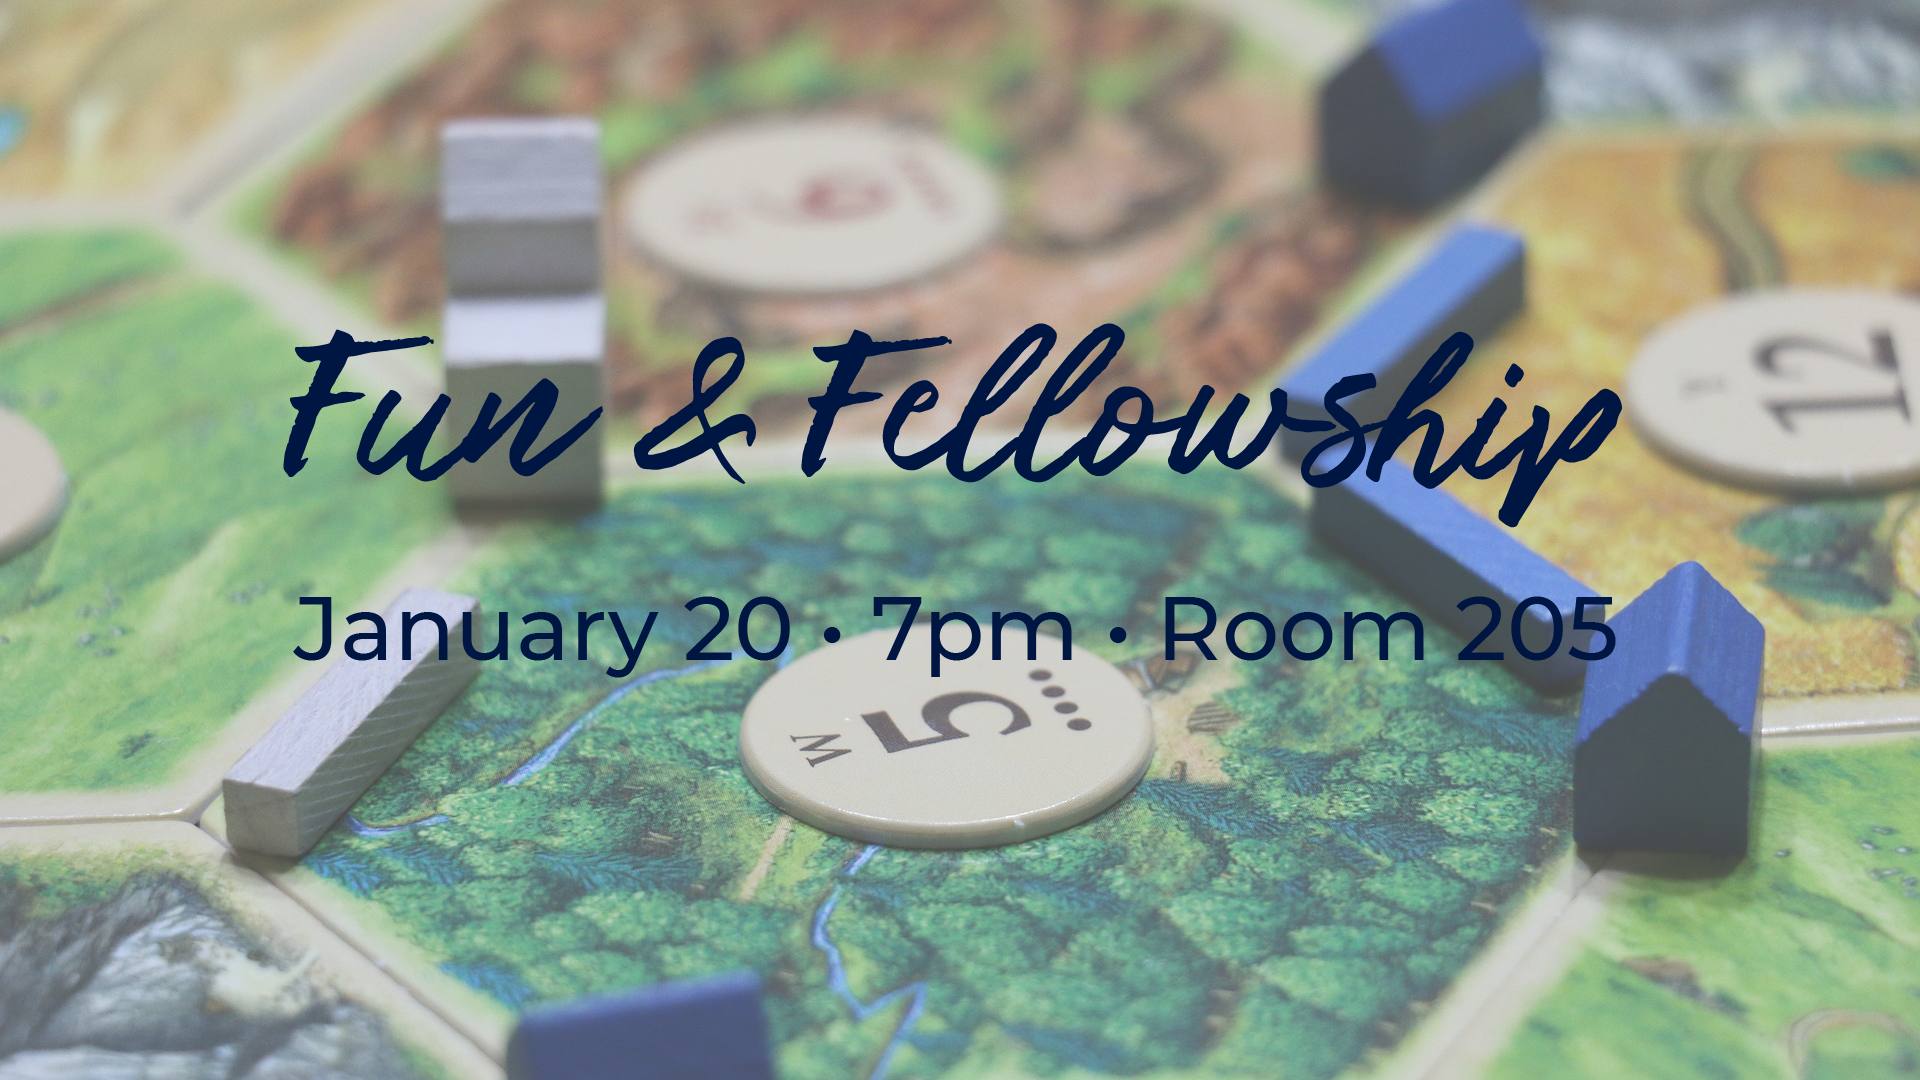 Fun & Fellowship Night - January 20th, 2018 at 7pm in Room 205